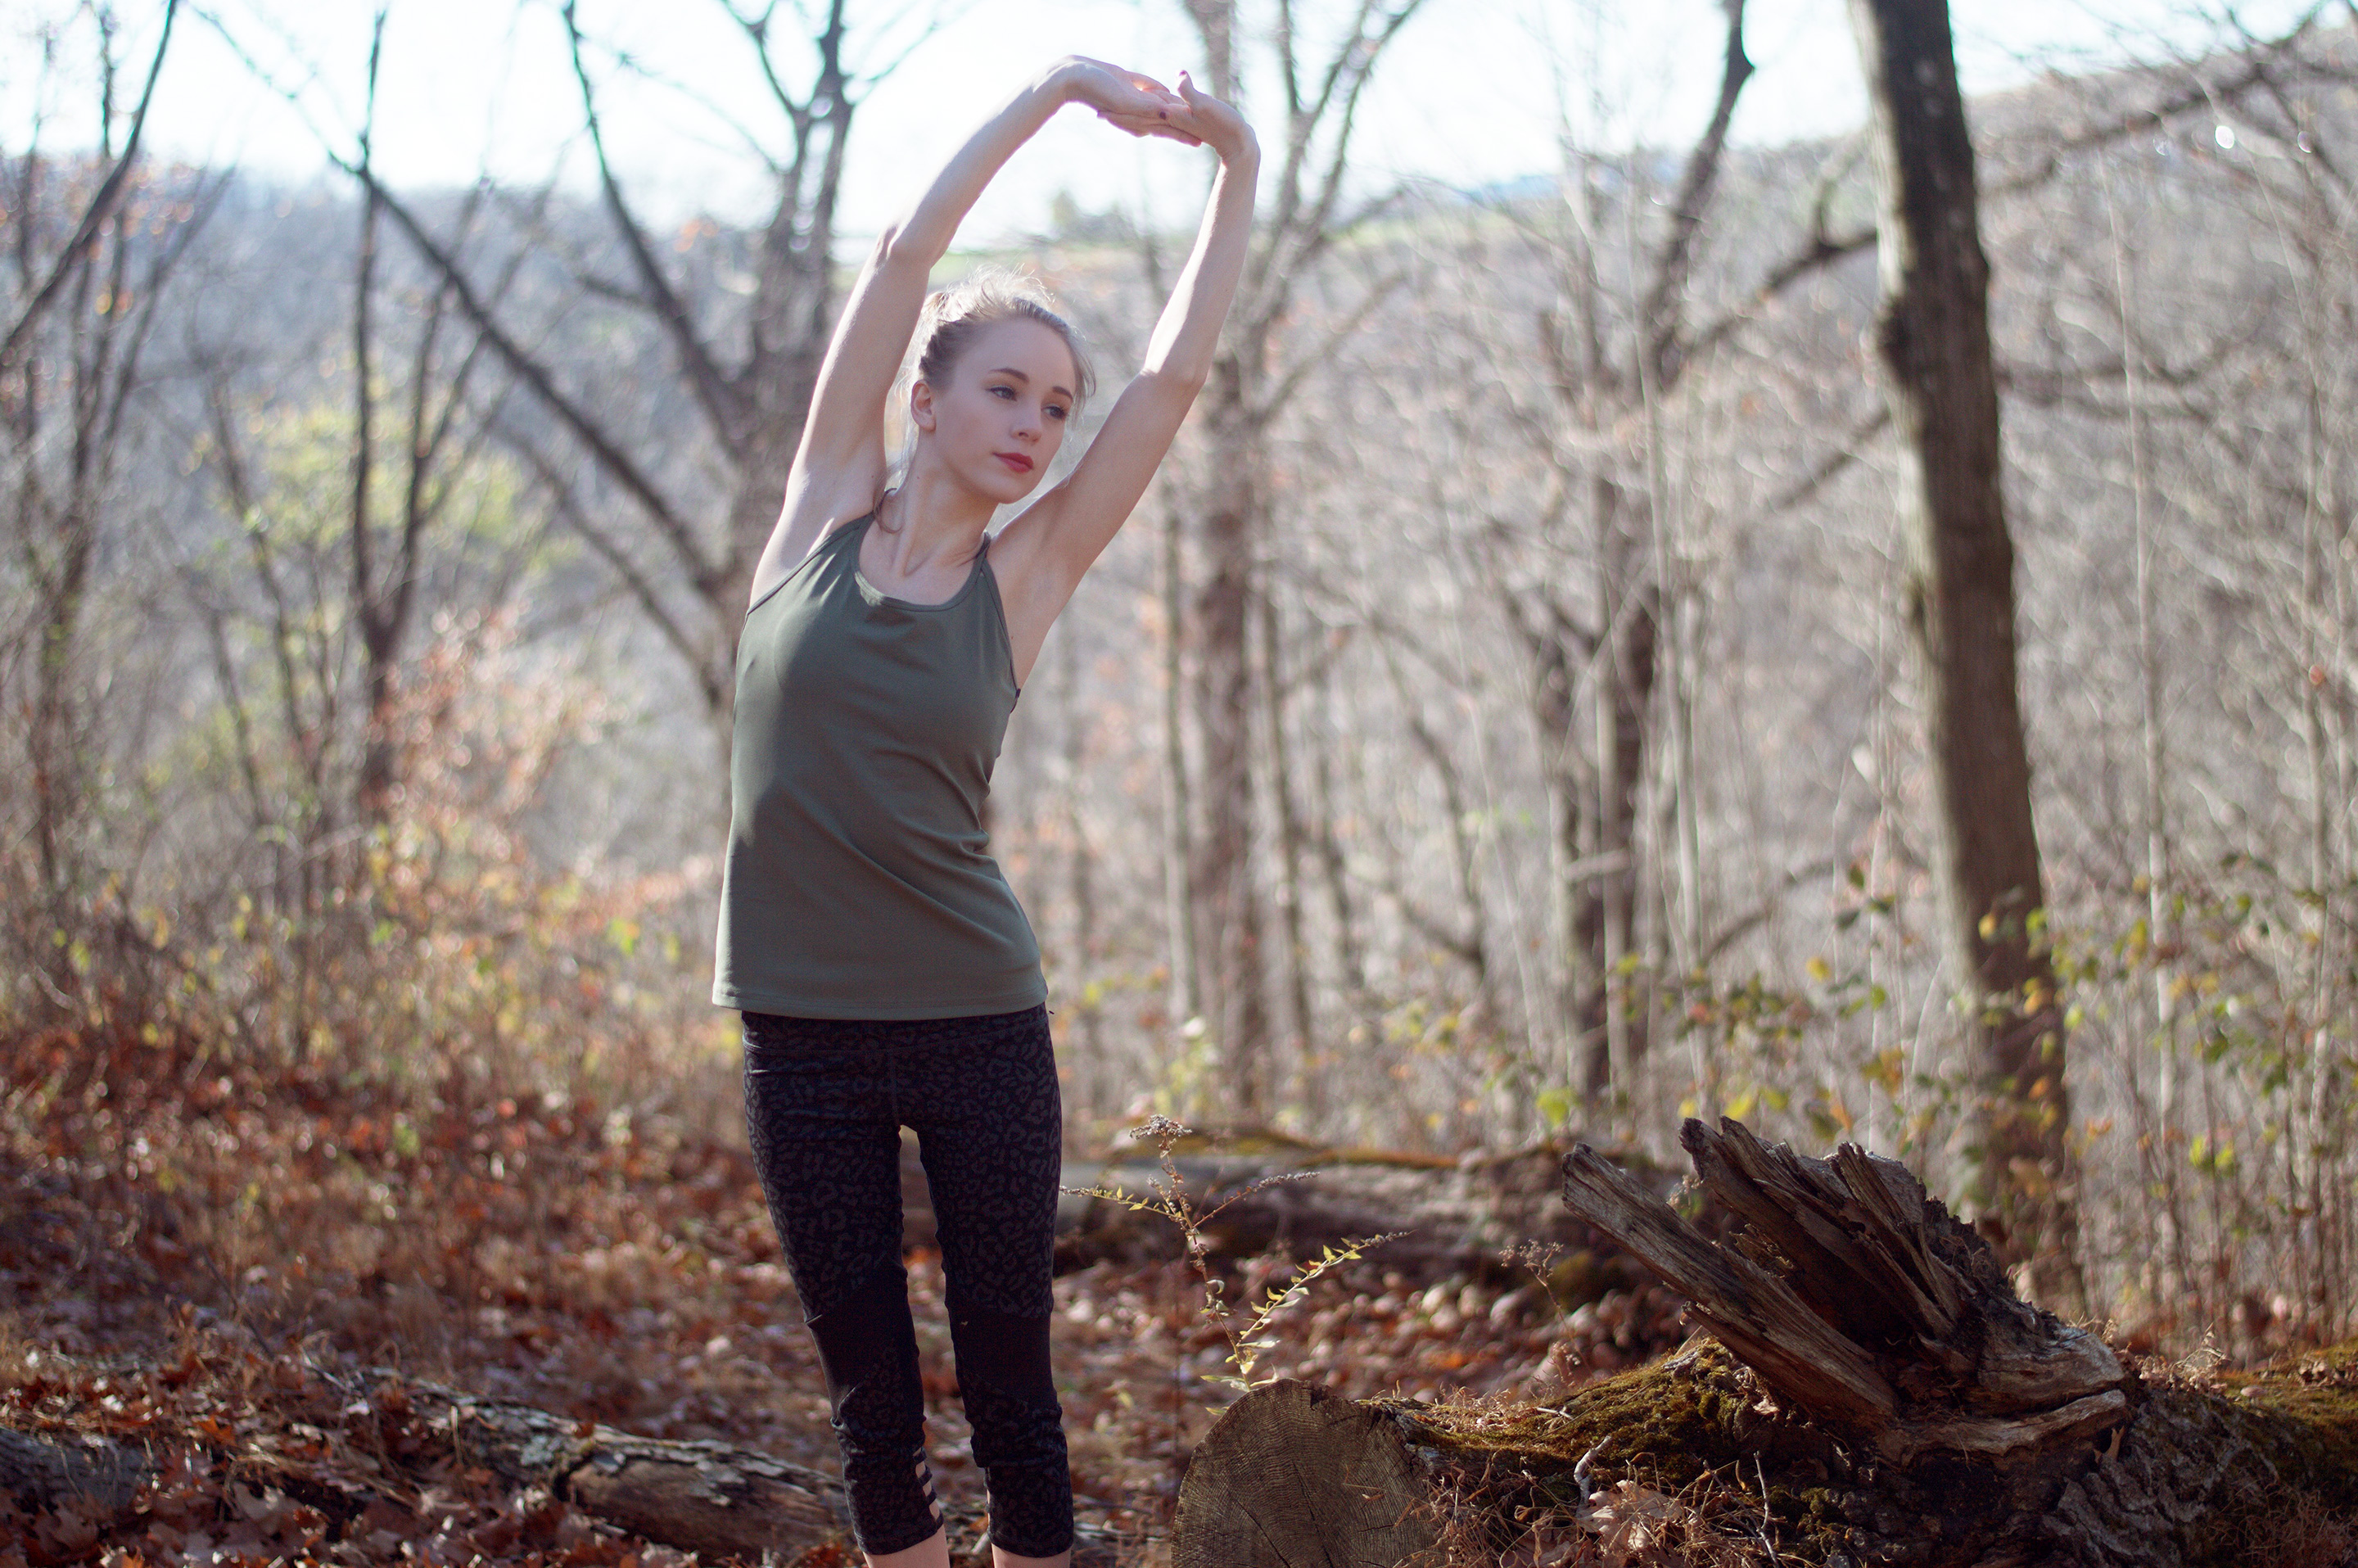 Workout Clothing Subscription worn by Fashion Blogger Rachael Burgess